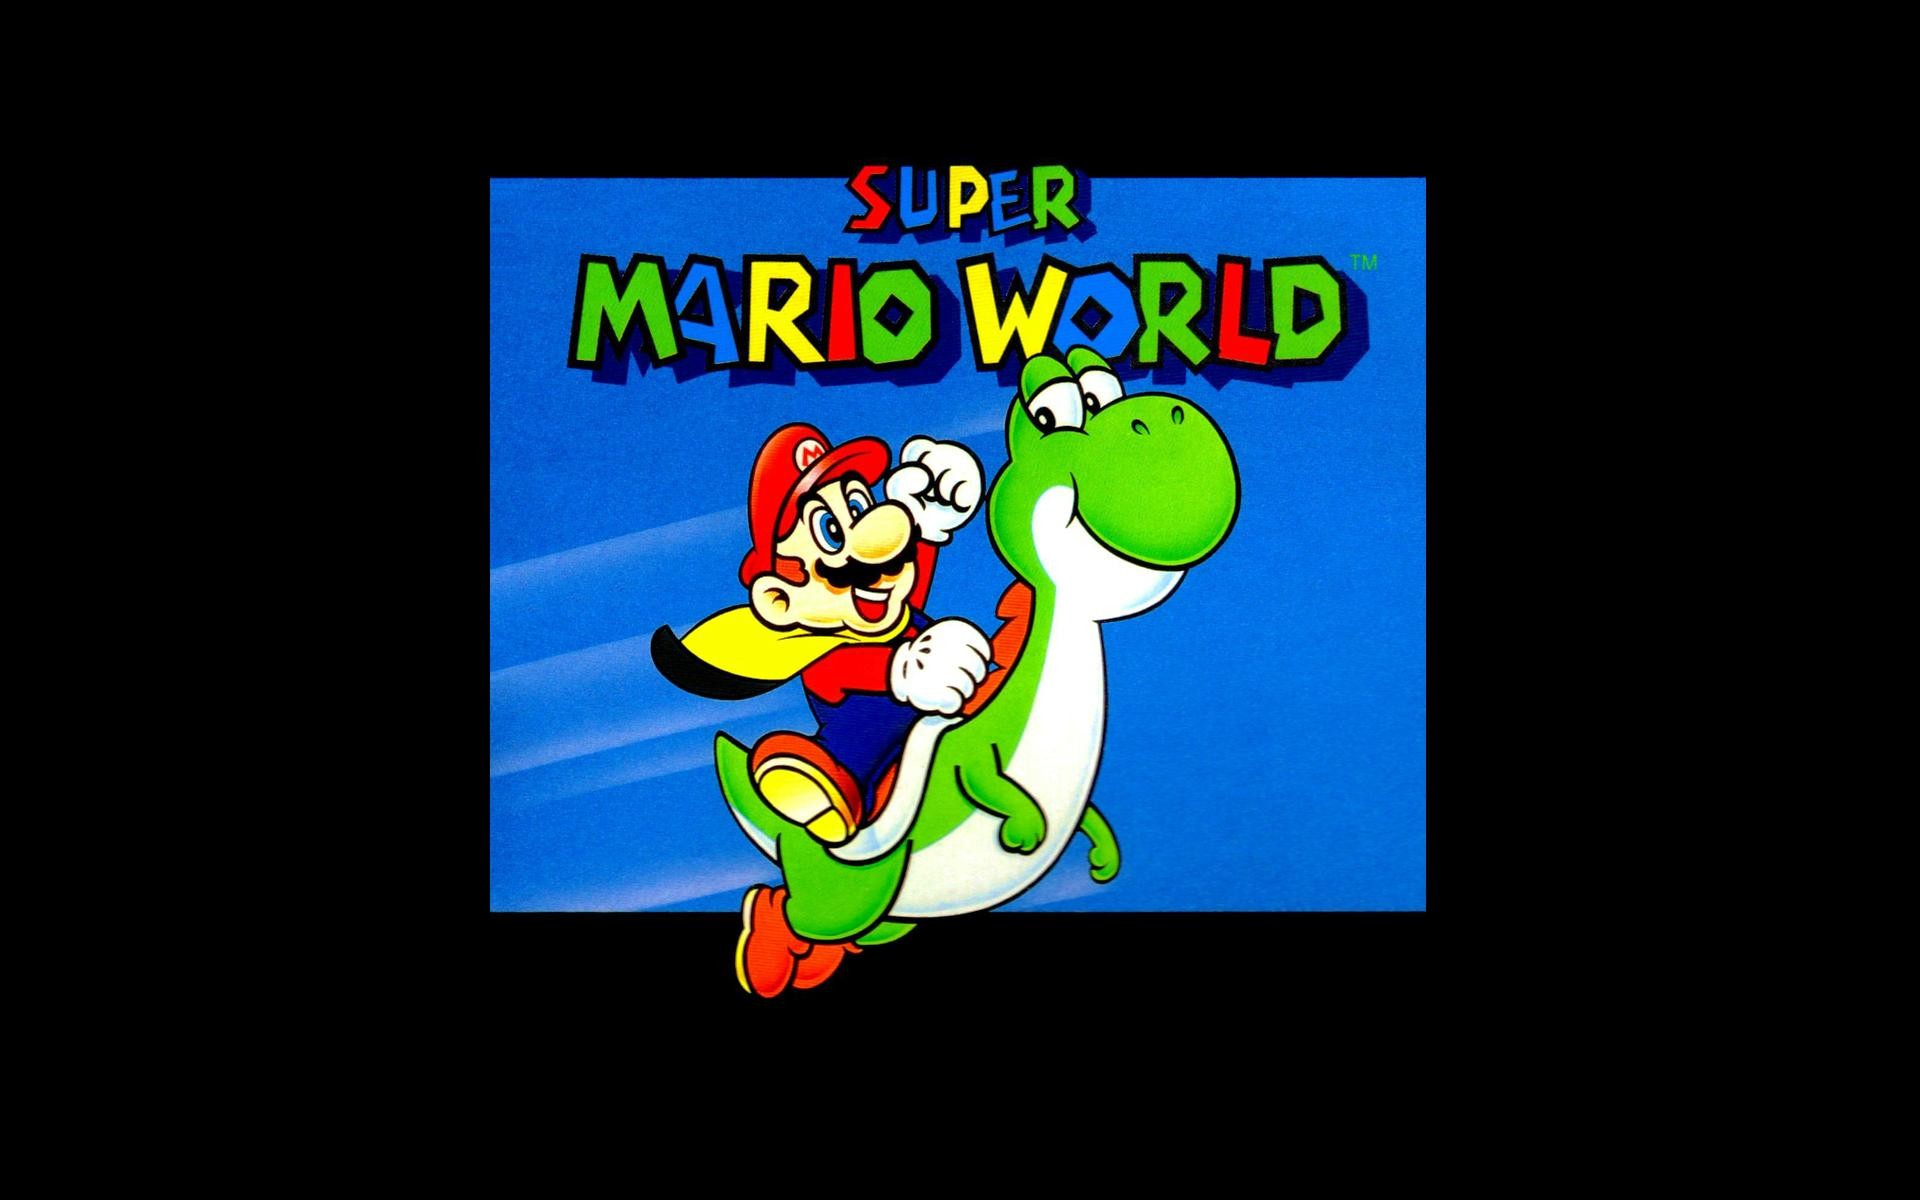 Super mario world wallpaper download free cool hd backgrounds super gumiabroncs Choice Image